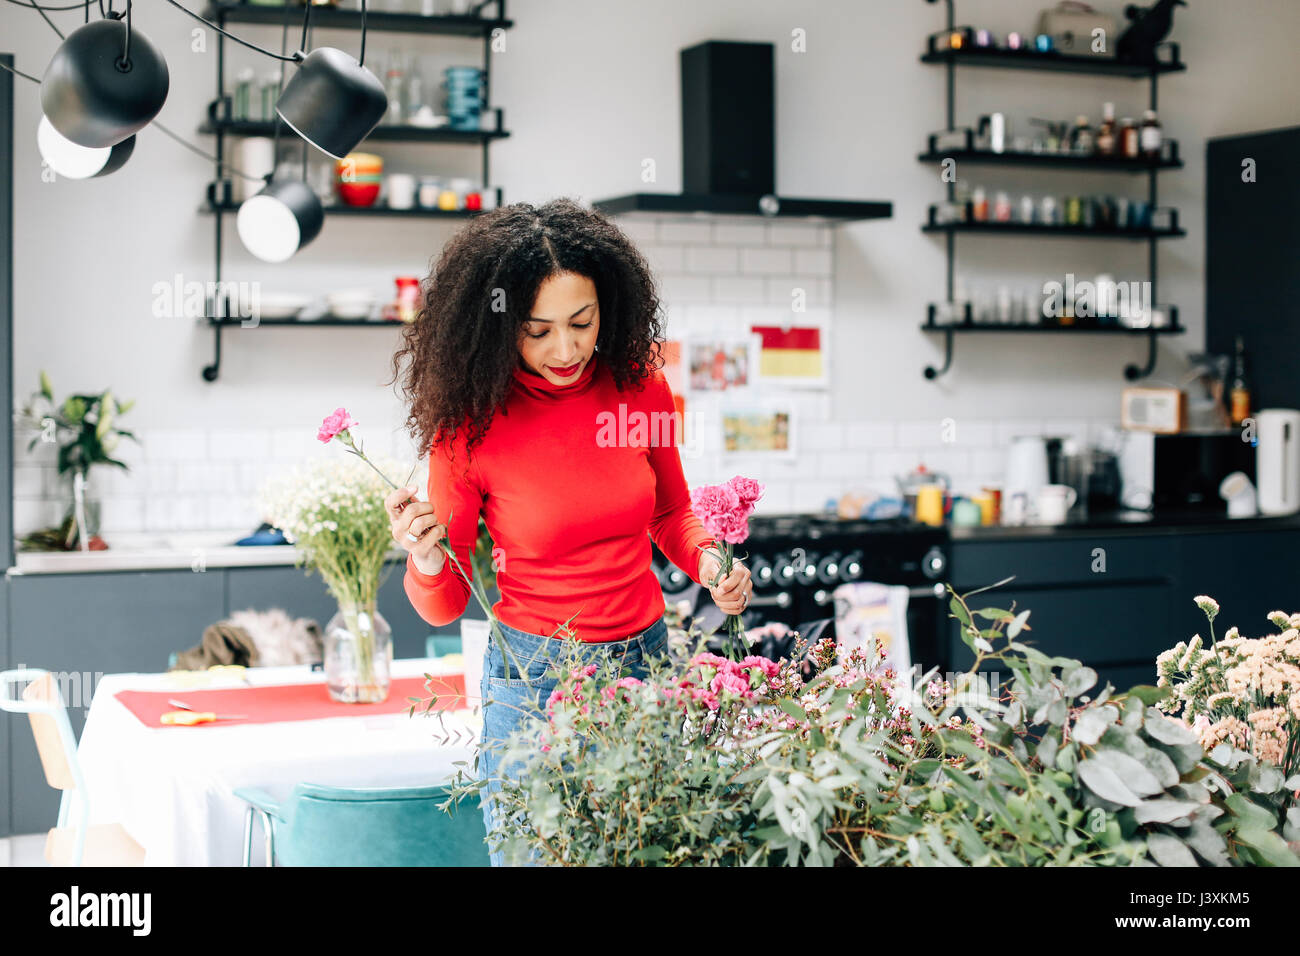 Female florist arranging flowers pour atelier floral afficher Photo Stock